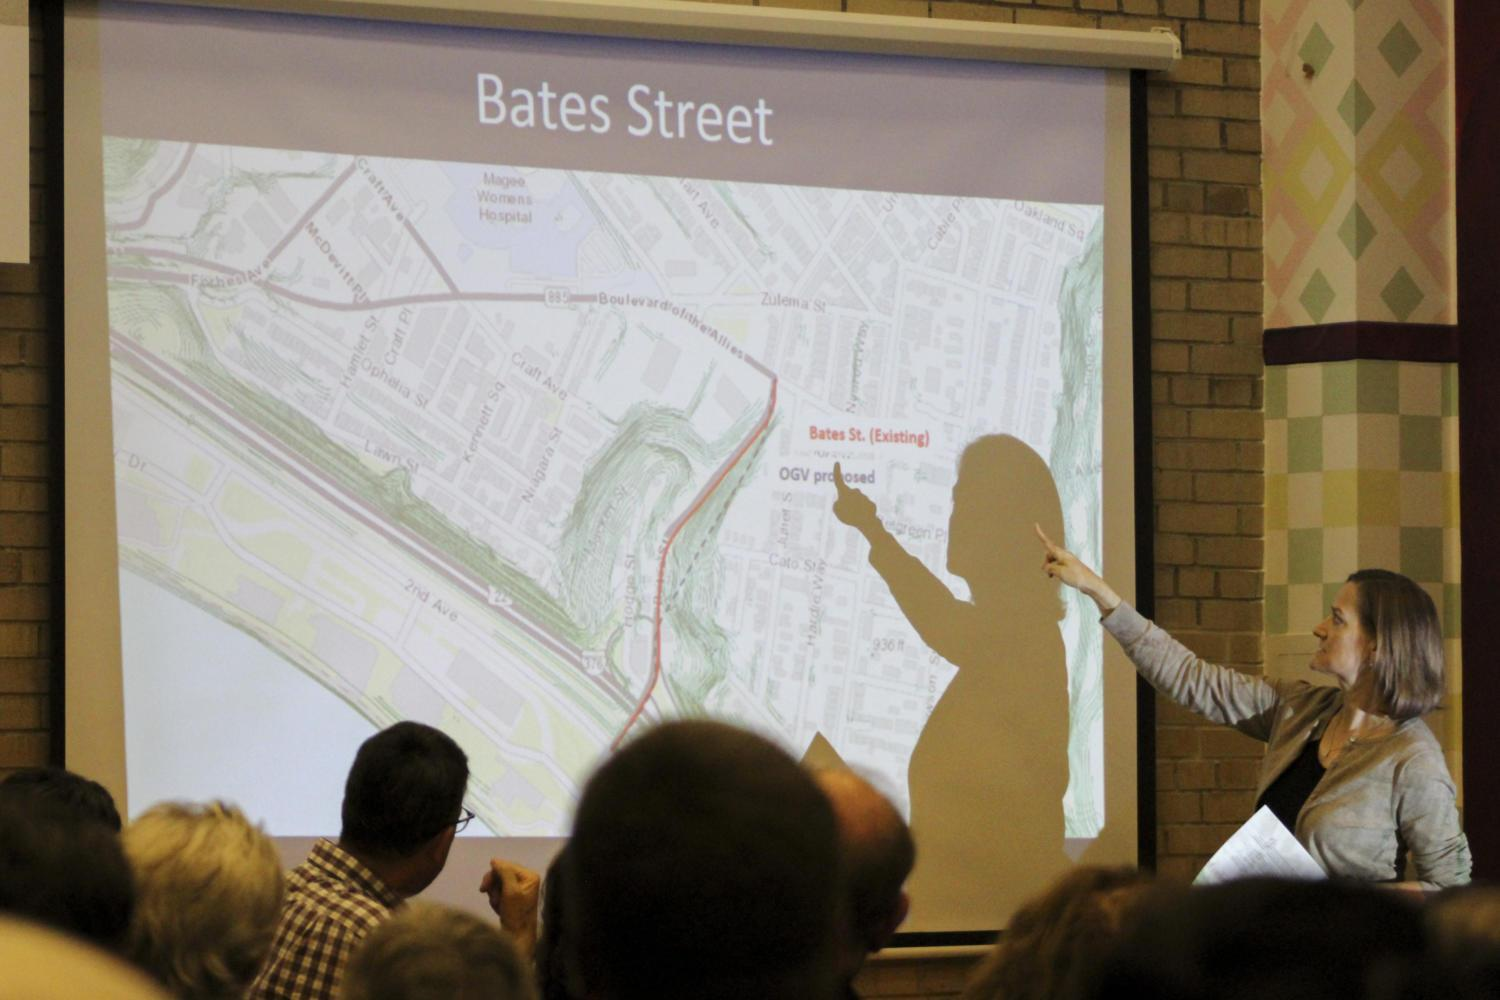 Wanda Wilson, executive director of OPDC, speaks against a proposed development along the Bates Street corridor during a town hall at the Oakland Career Center Thursday evening. (Photo by Hari Iyer | Staff Photographer)